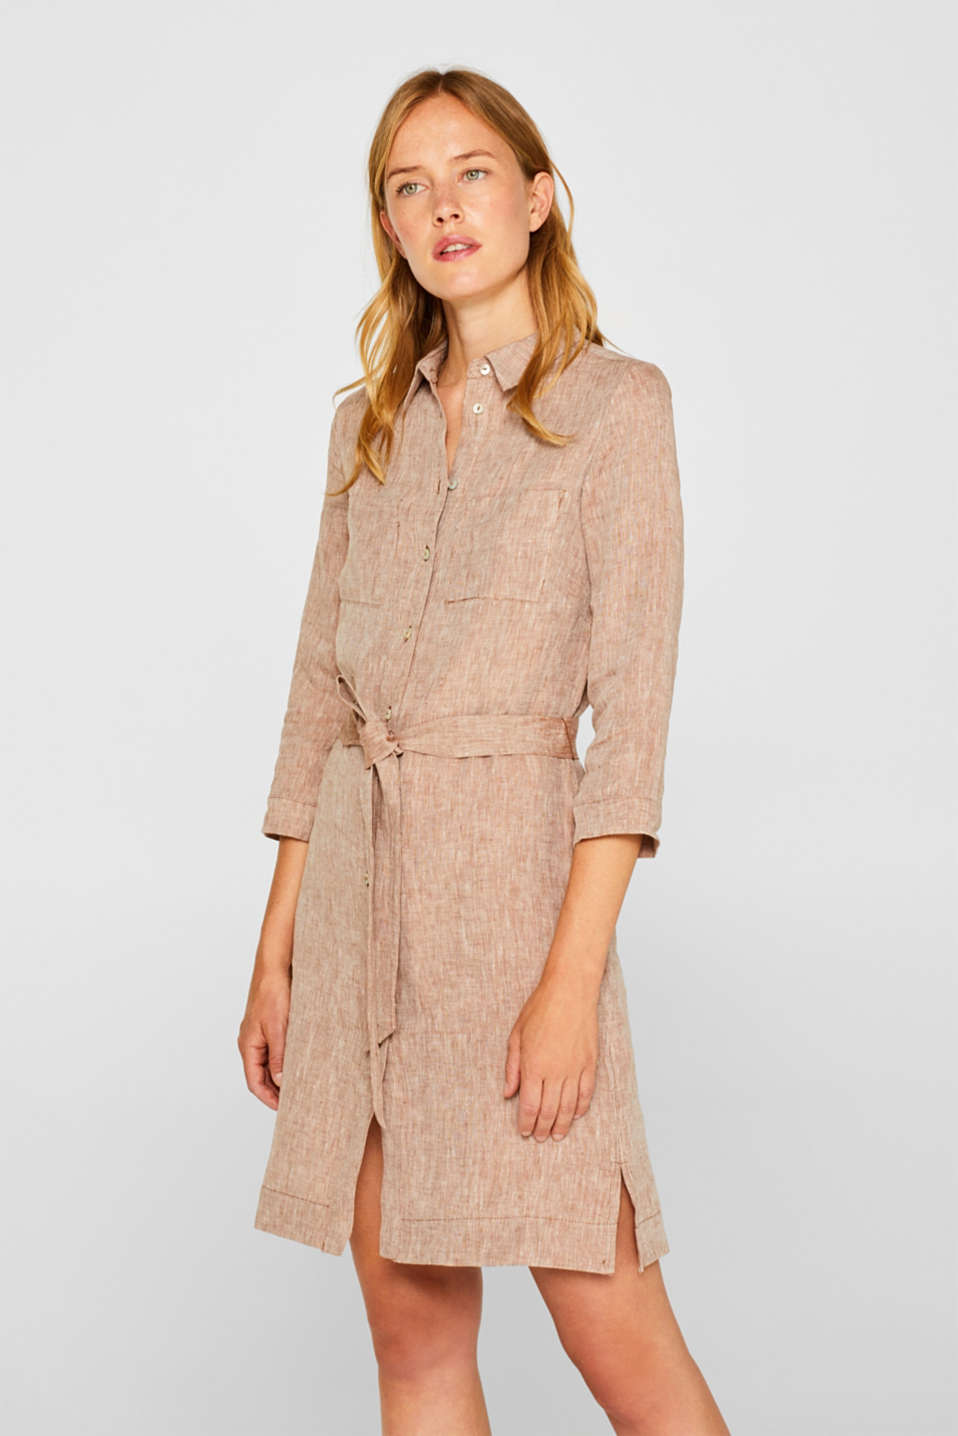 Esprit - Made of 100% linen: melange shirt dress